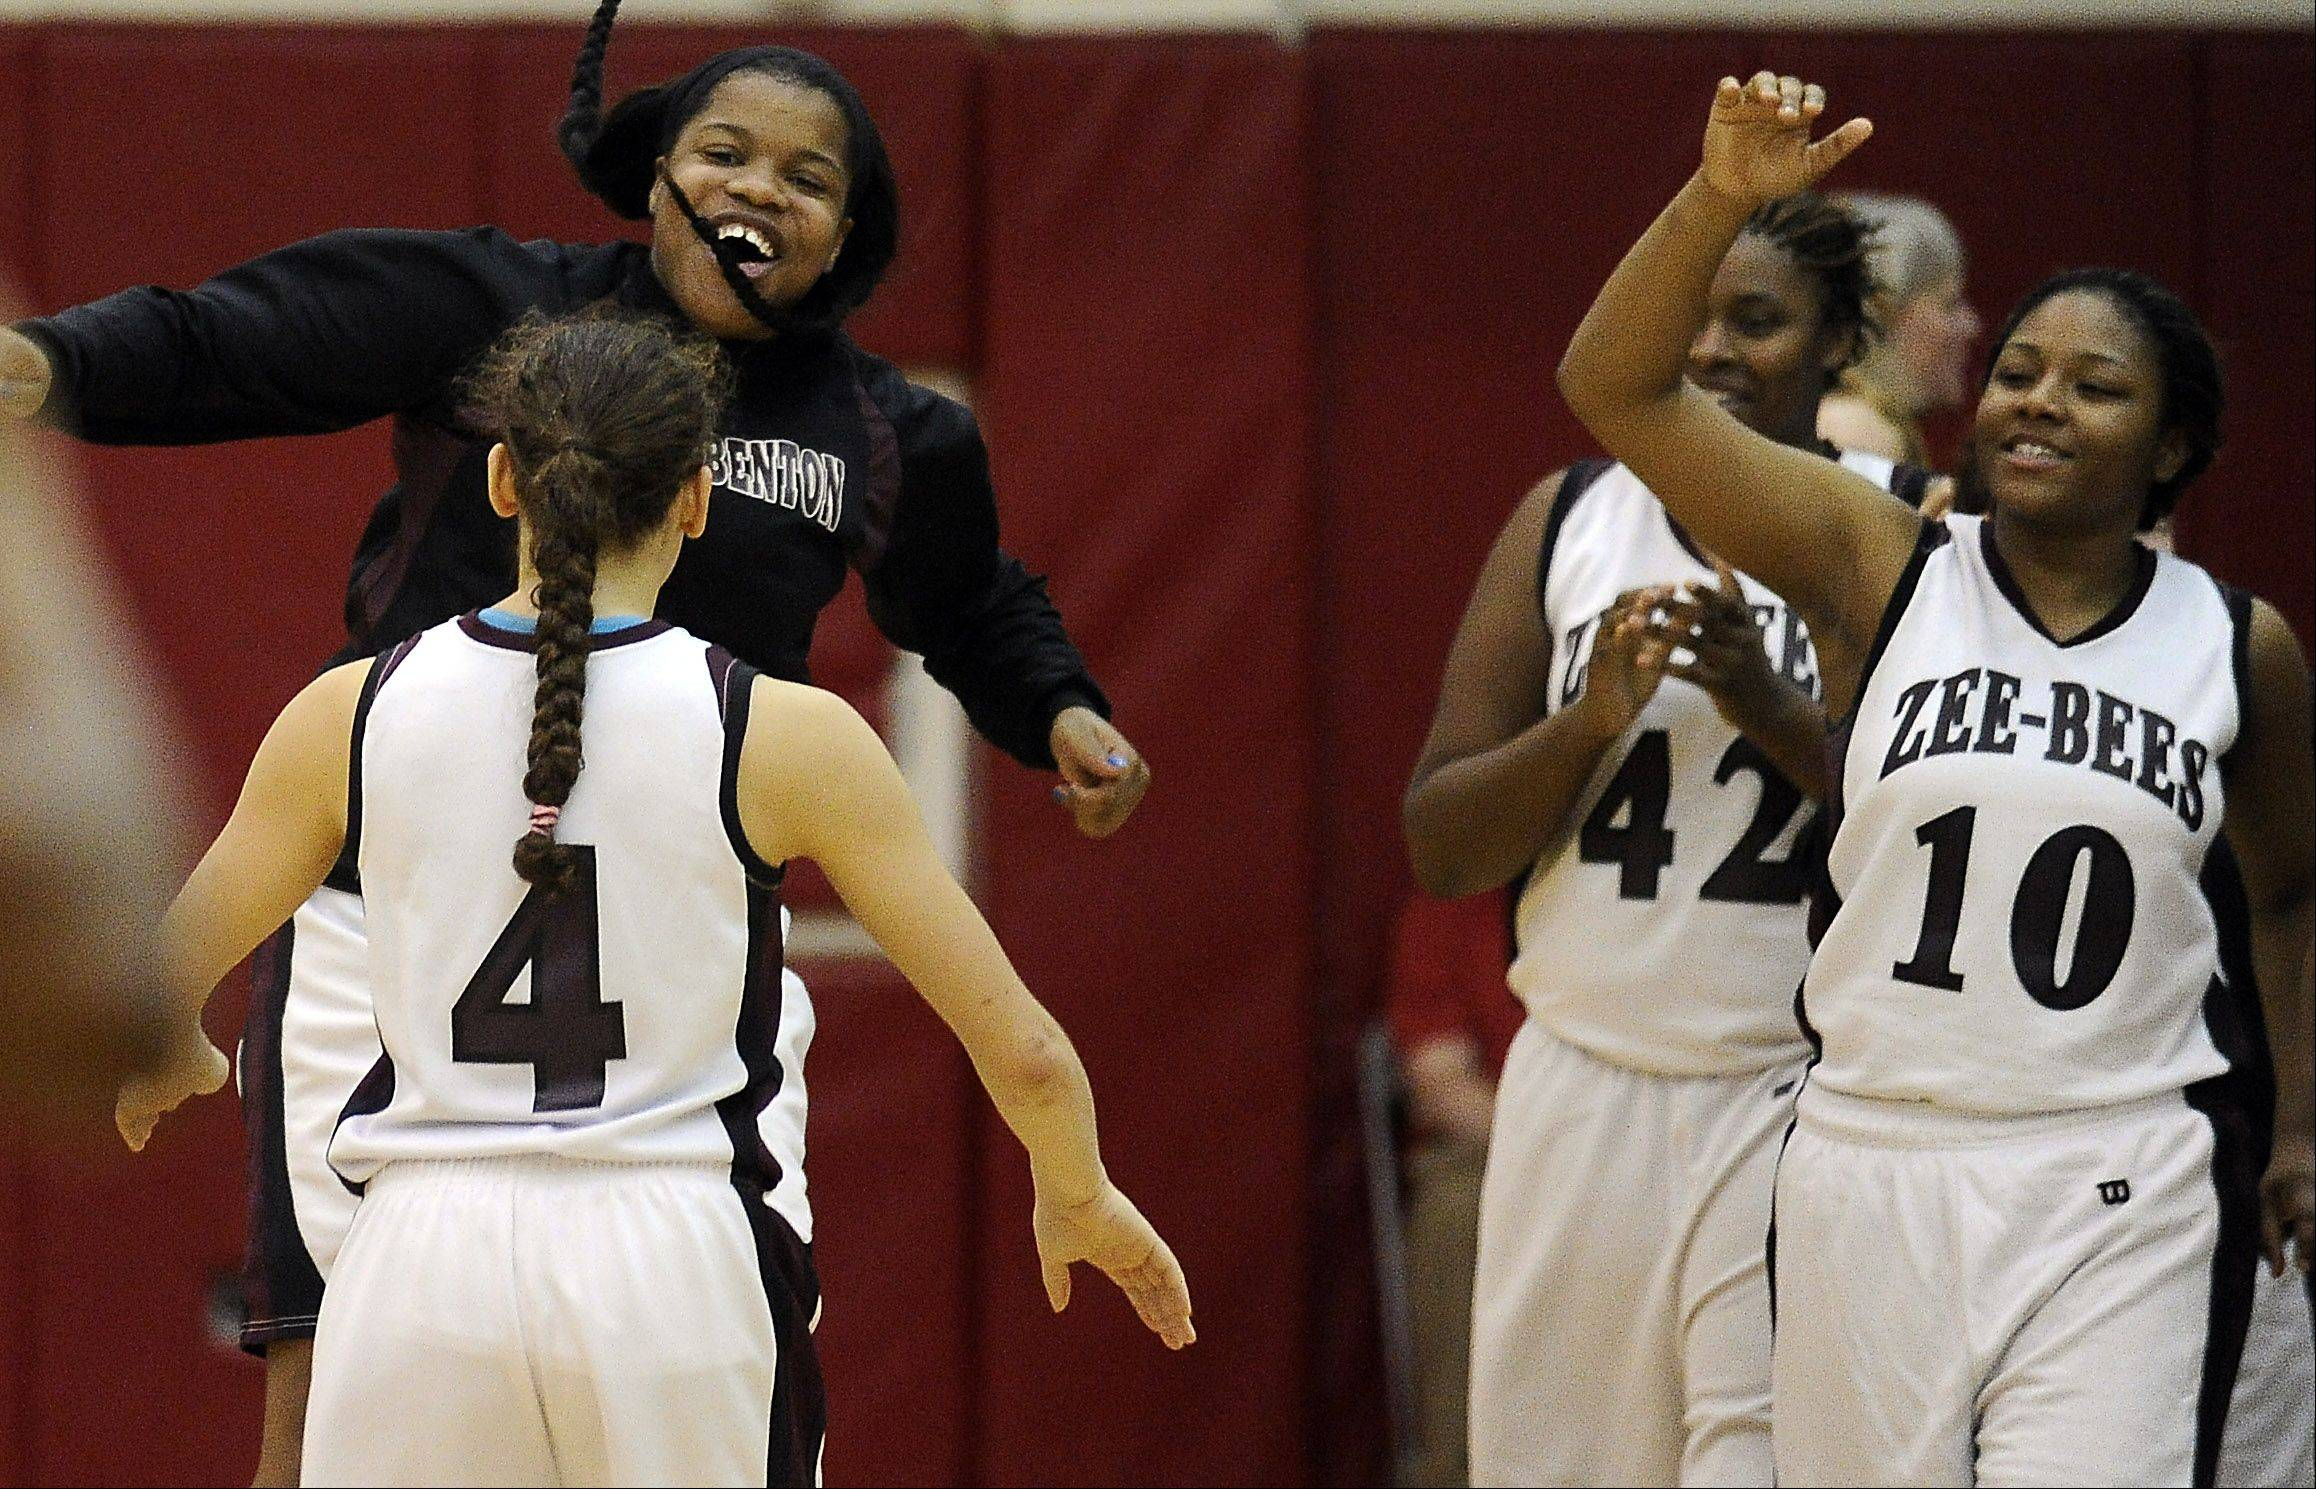 Zion-Benton players celebrate their win over Stevenson.